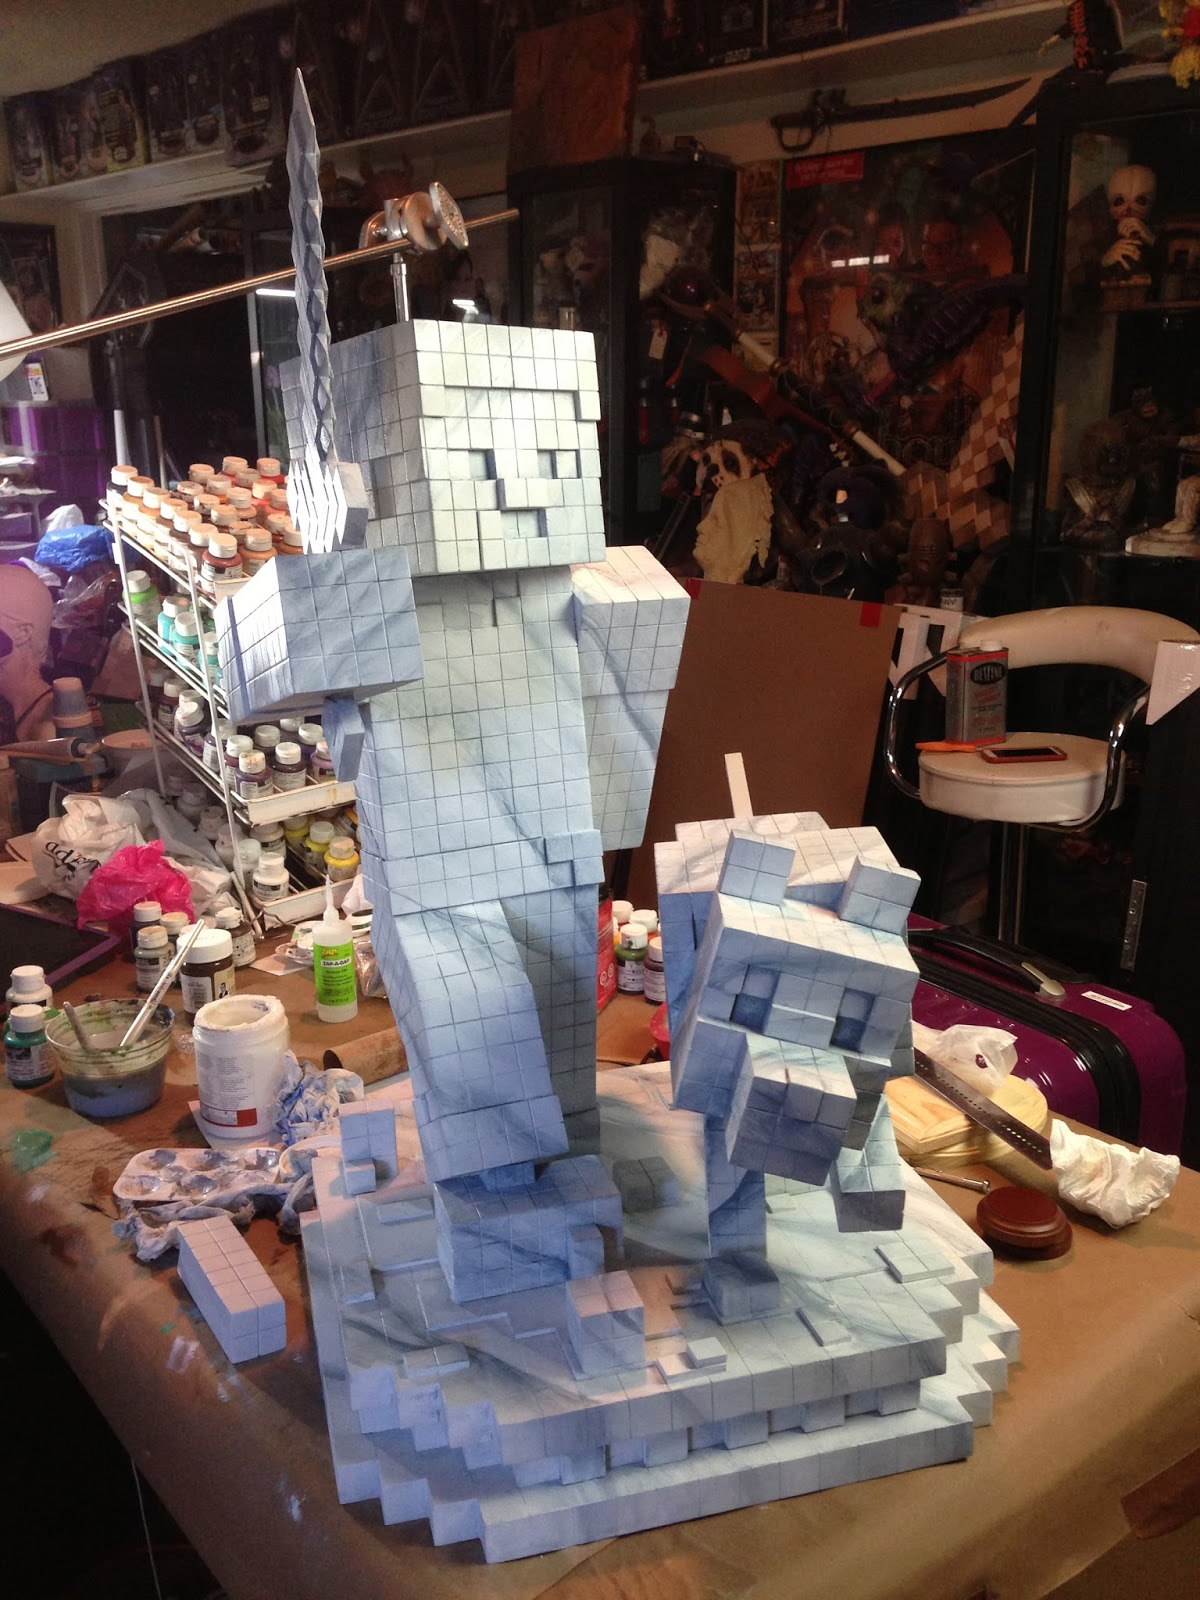 Greg Aronowitz Minecraft Art Exhibit At The V Amp A Museum In